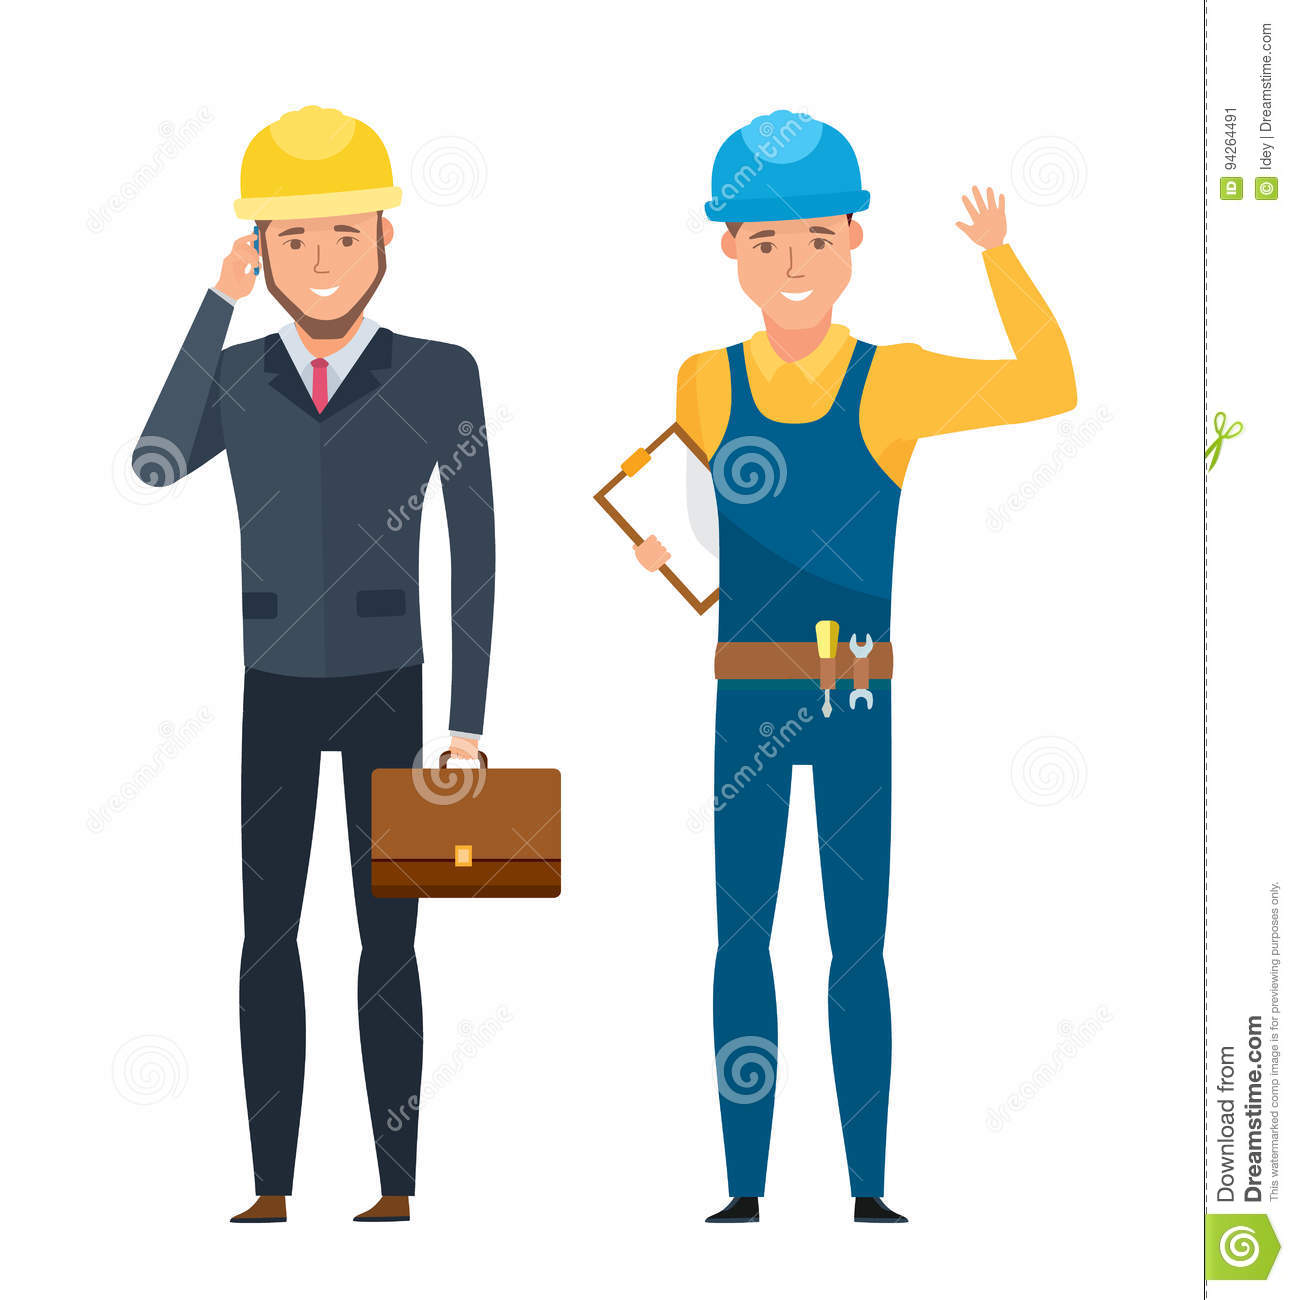 Supervisor Cartoons Illustrations  Vector Stock Images